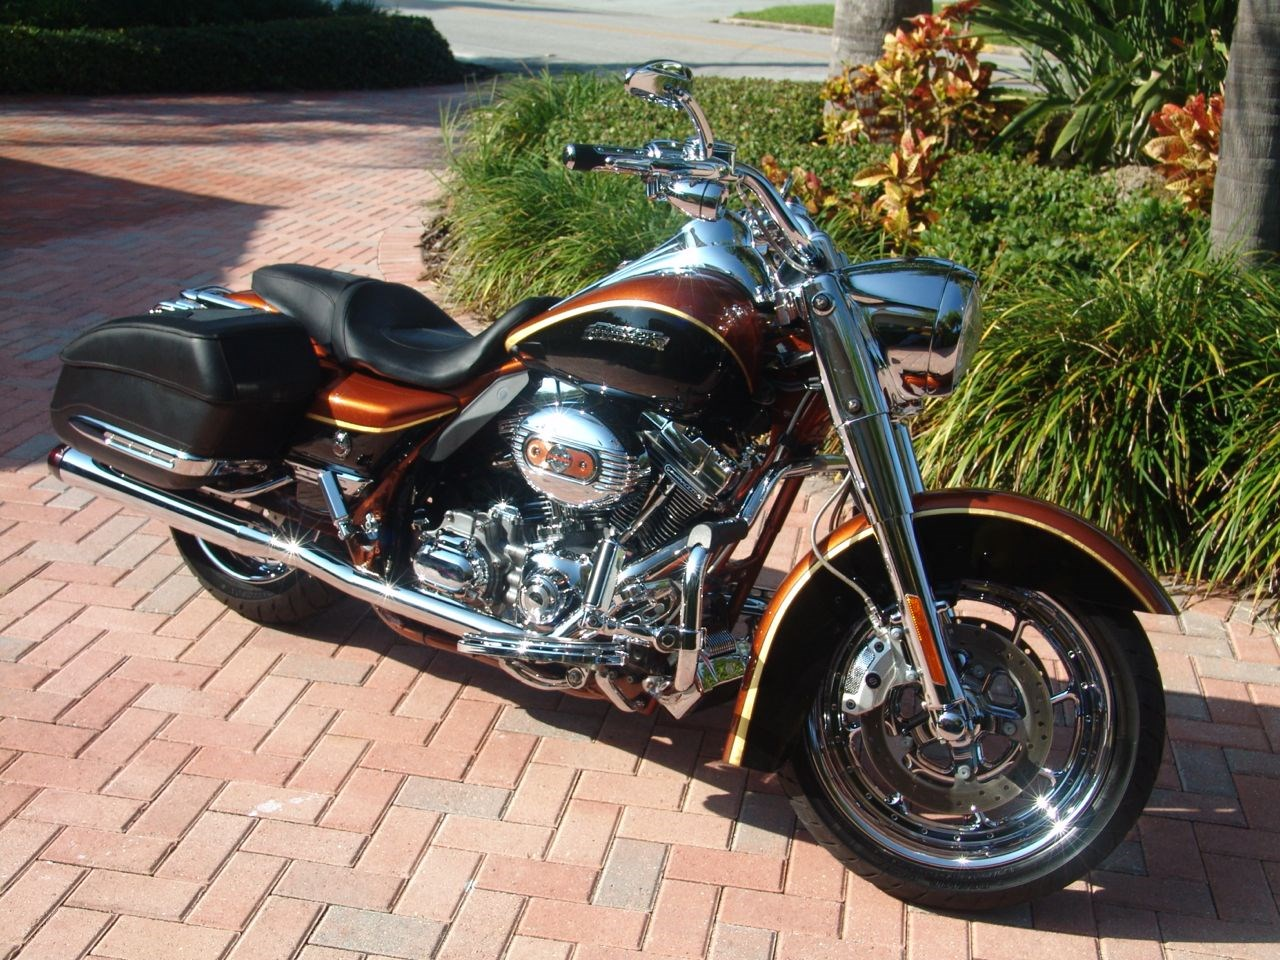 2008 Harley Davidson 174 Flhrse4 Screamin Eagle 174 Road King